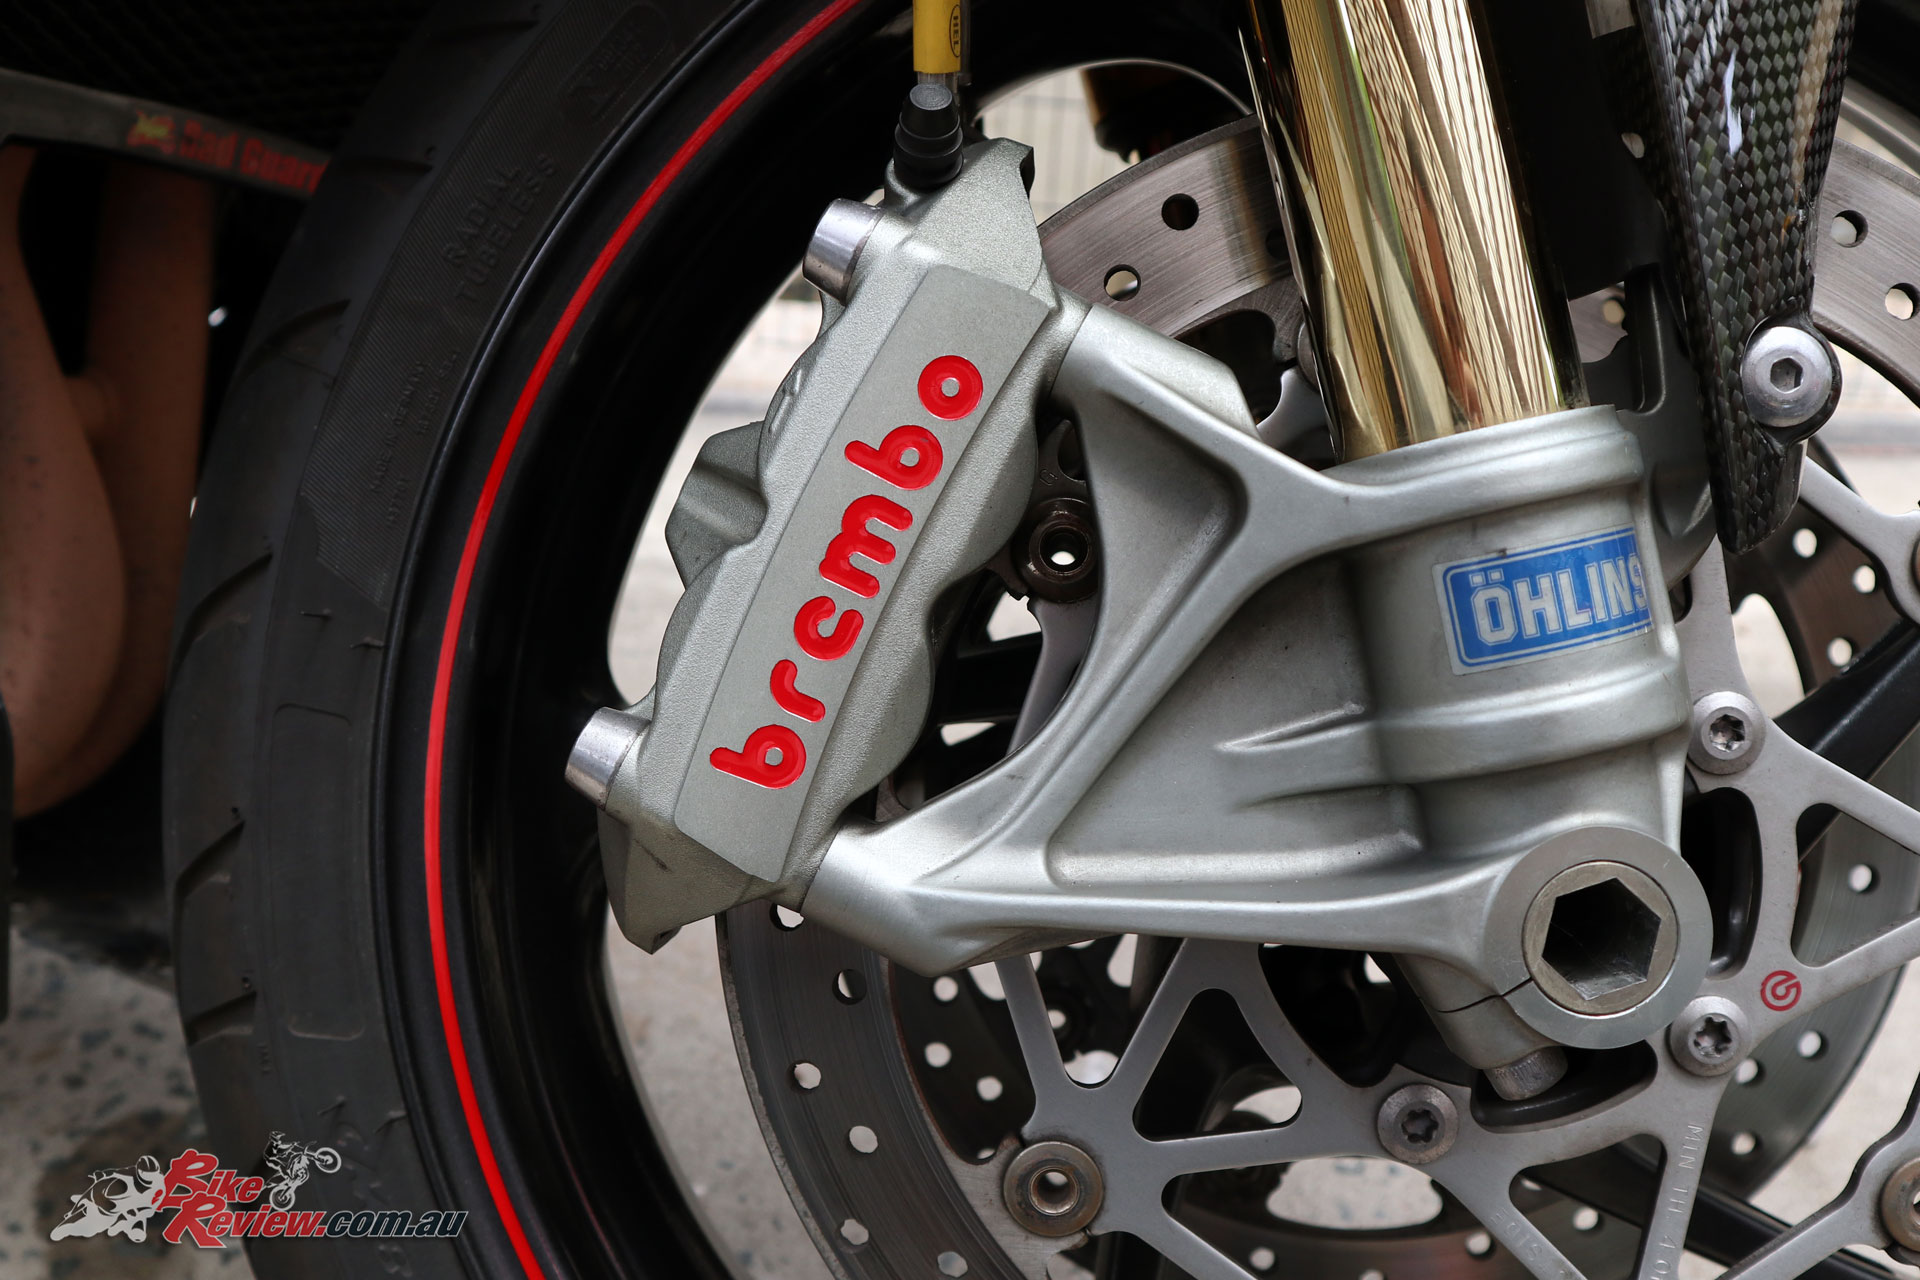 The Brembo calipers are monobloc items, and you can see the two mounting bolts.